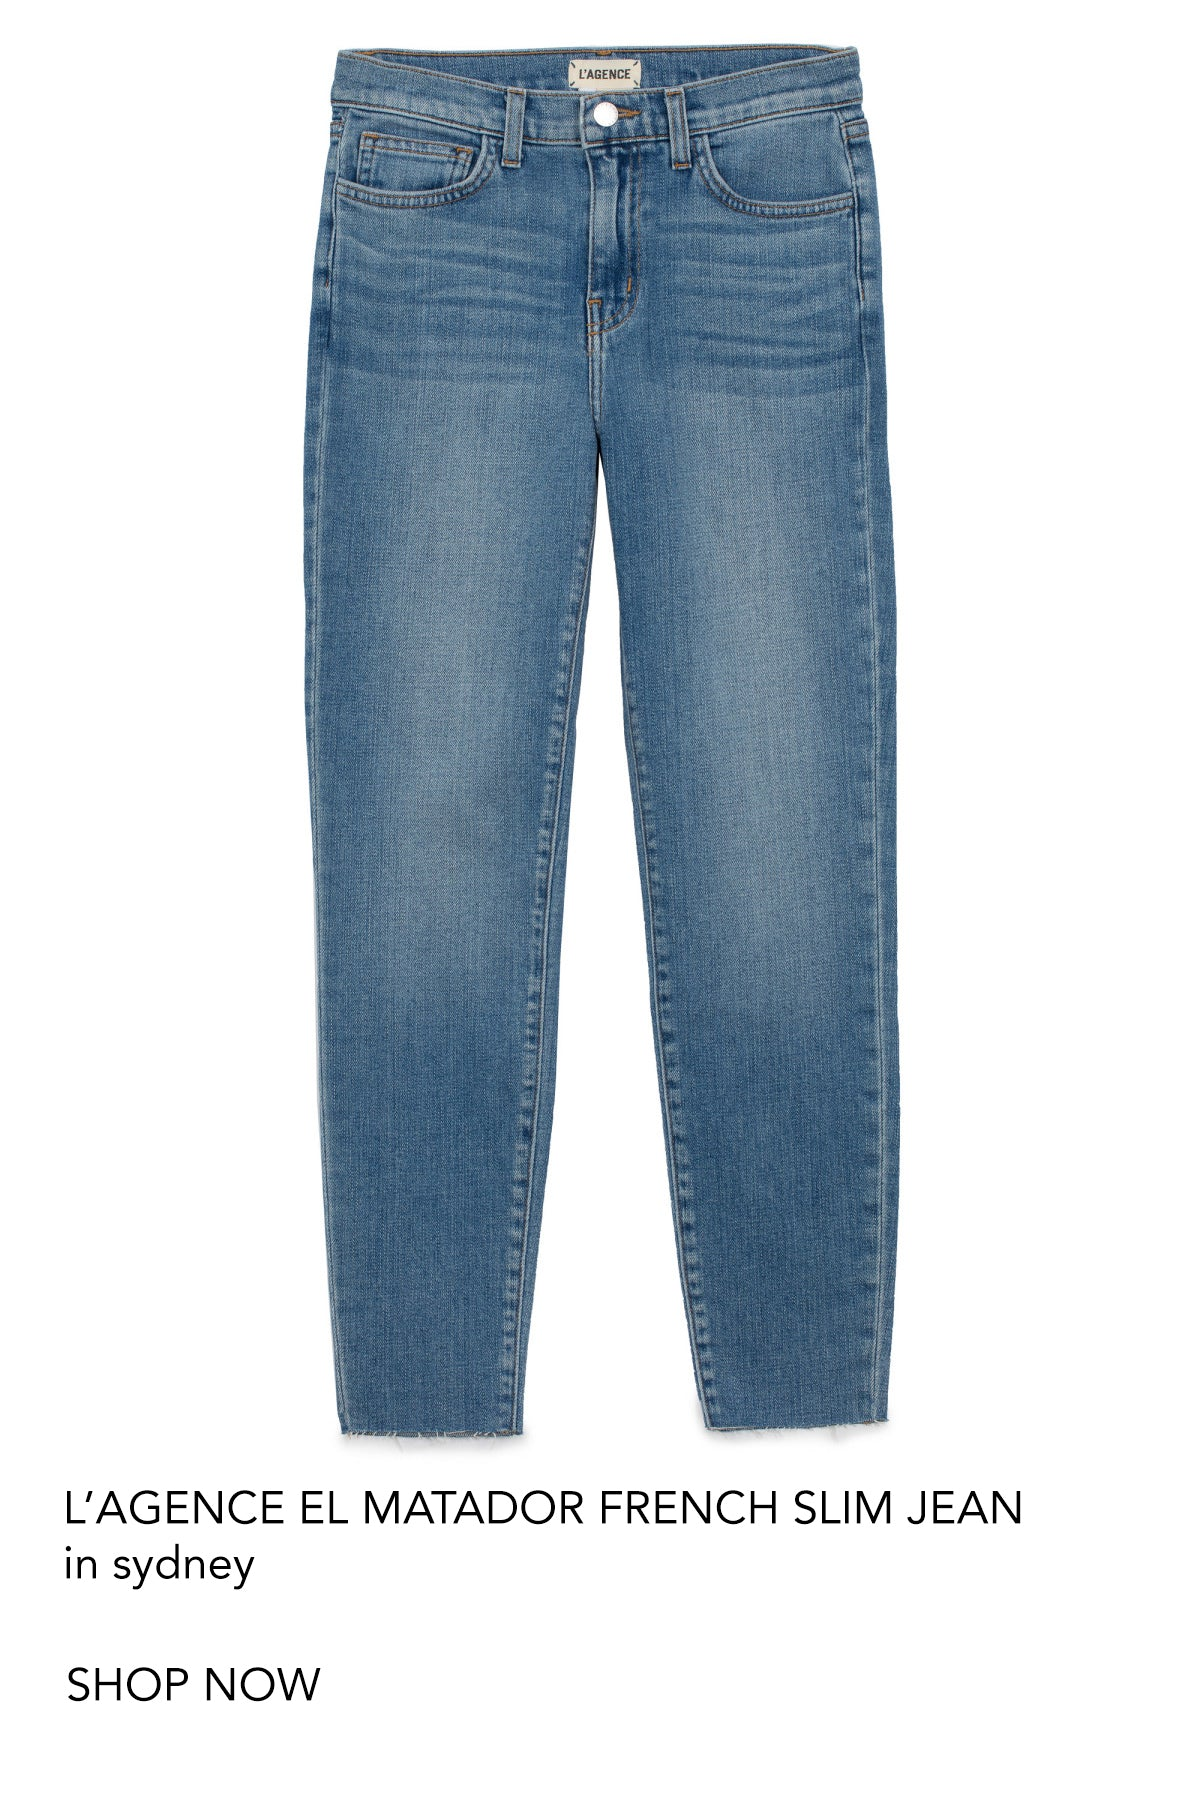 l'agence el matador slim jean denim perth australia fashion iridescent sea beach house